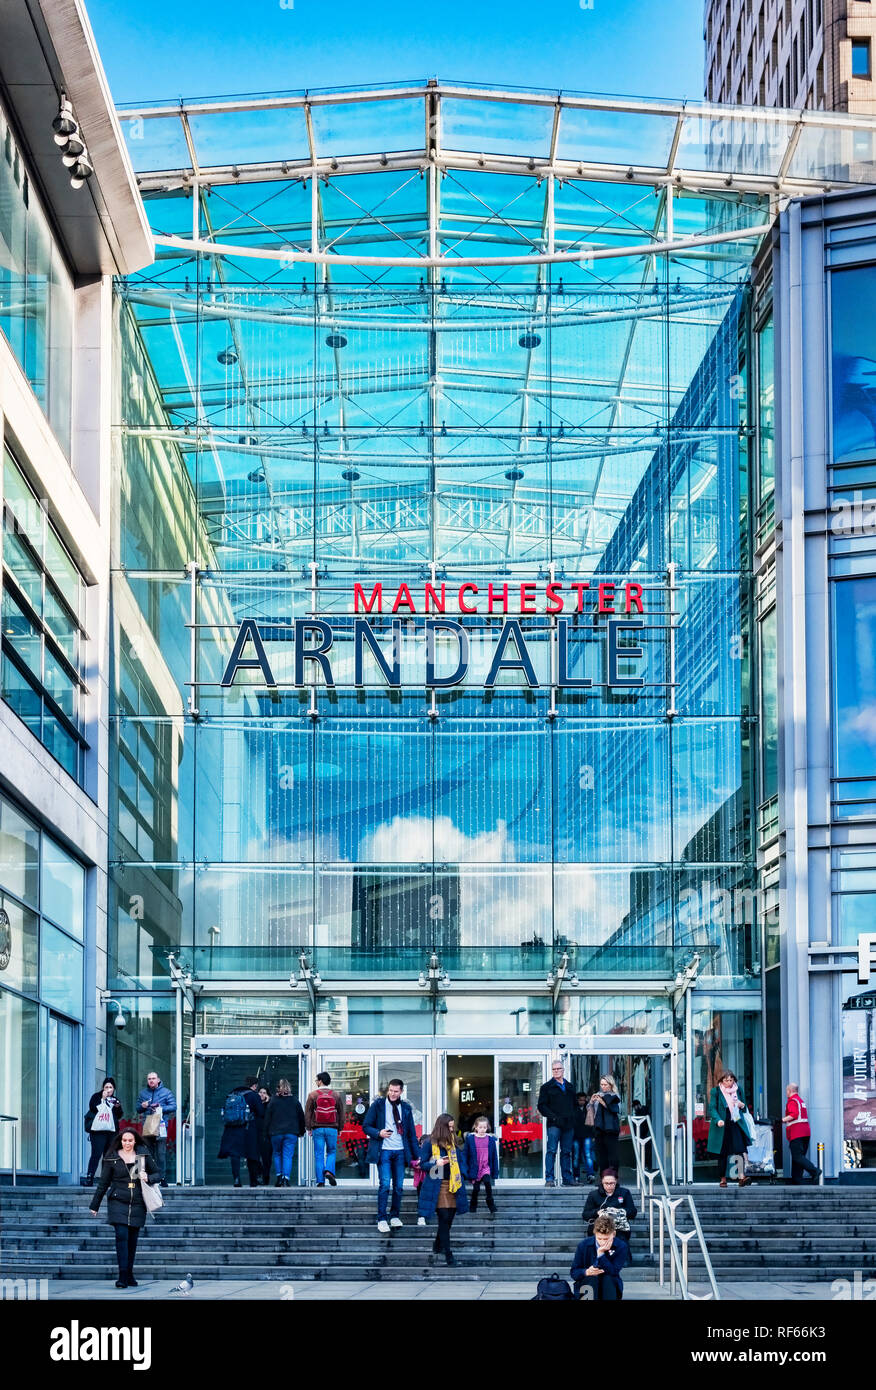 2 November 2018: Manchester, UK -  Corporation Street entrance to the Manchester Arndale shopping centre, one of the largest in the UK. Stock Photo